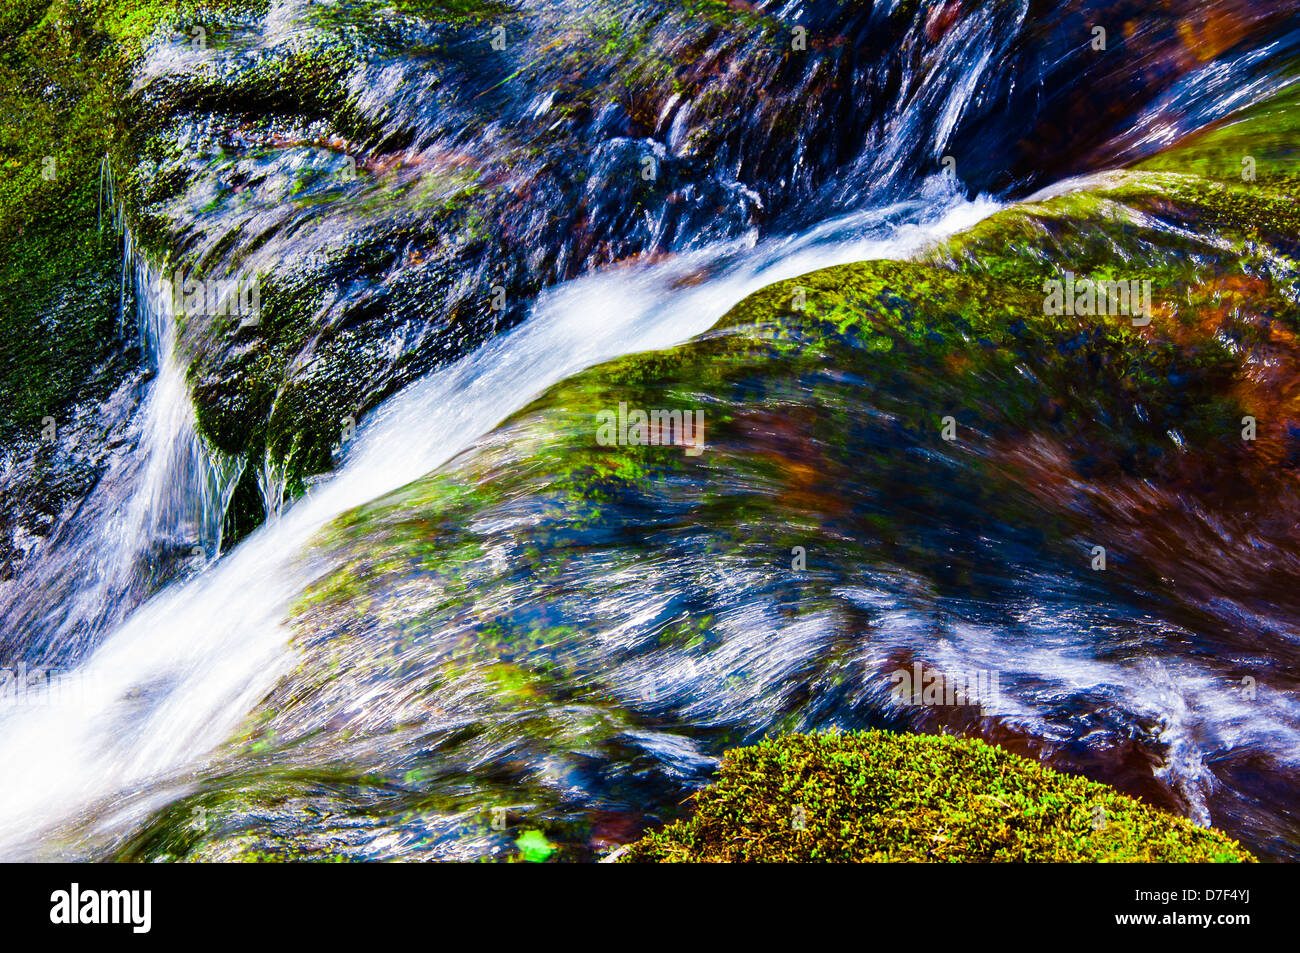 Crystal clear water flowing over green mossy rocks - Stock Image